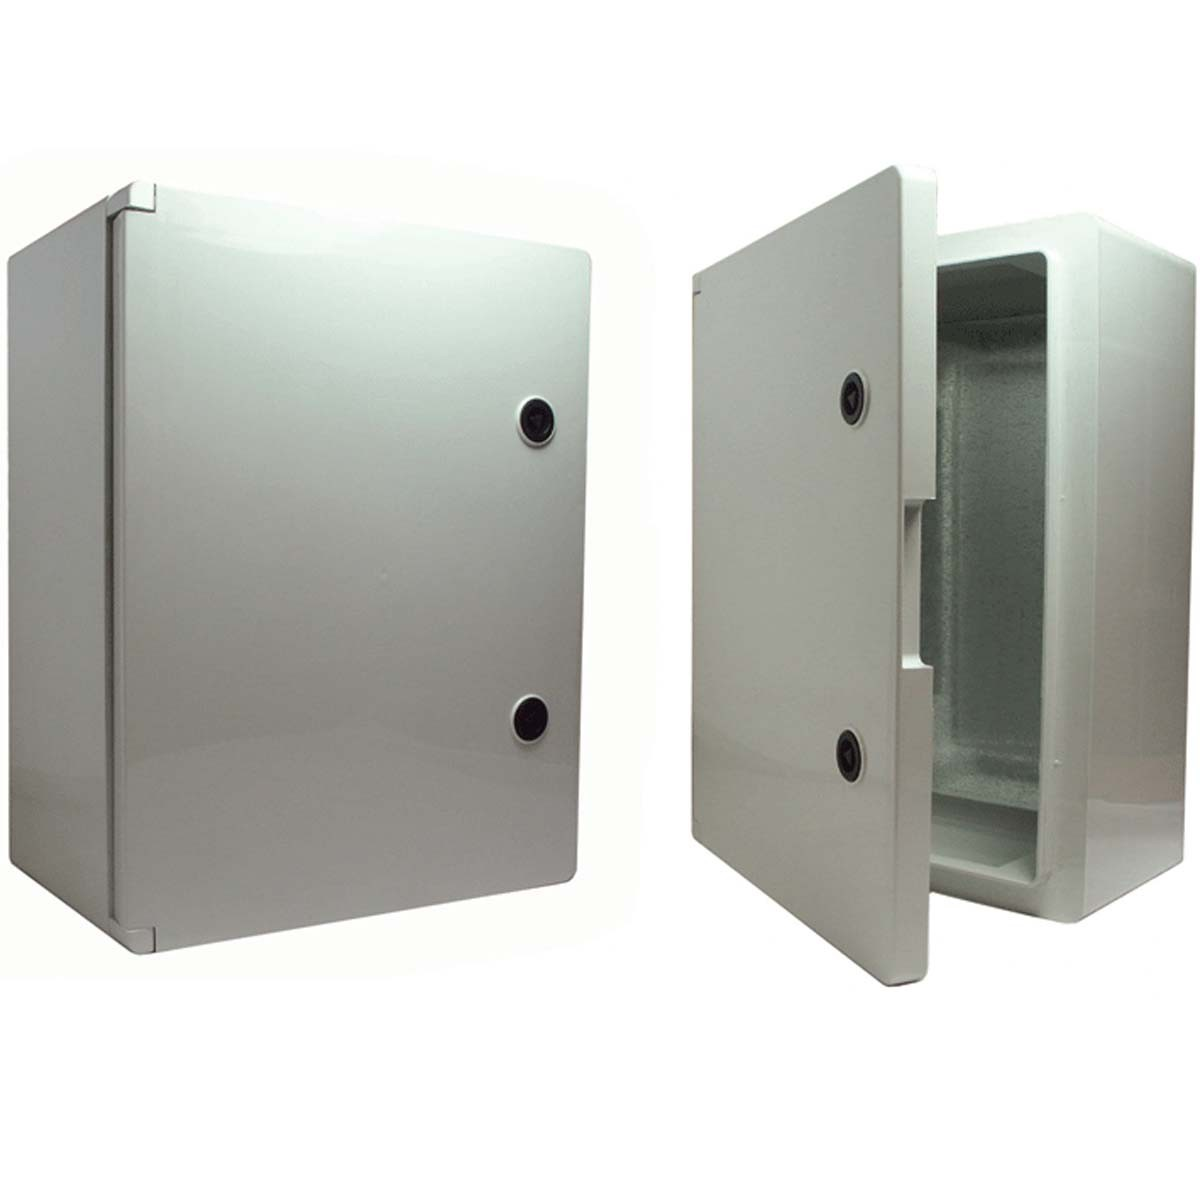 Europa Insulated ABS Plastic Enclosures (IP65)